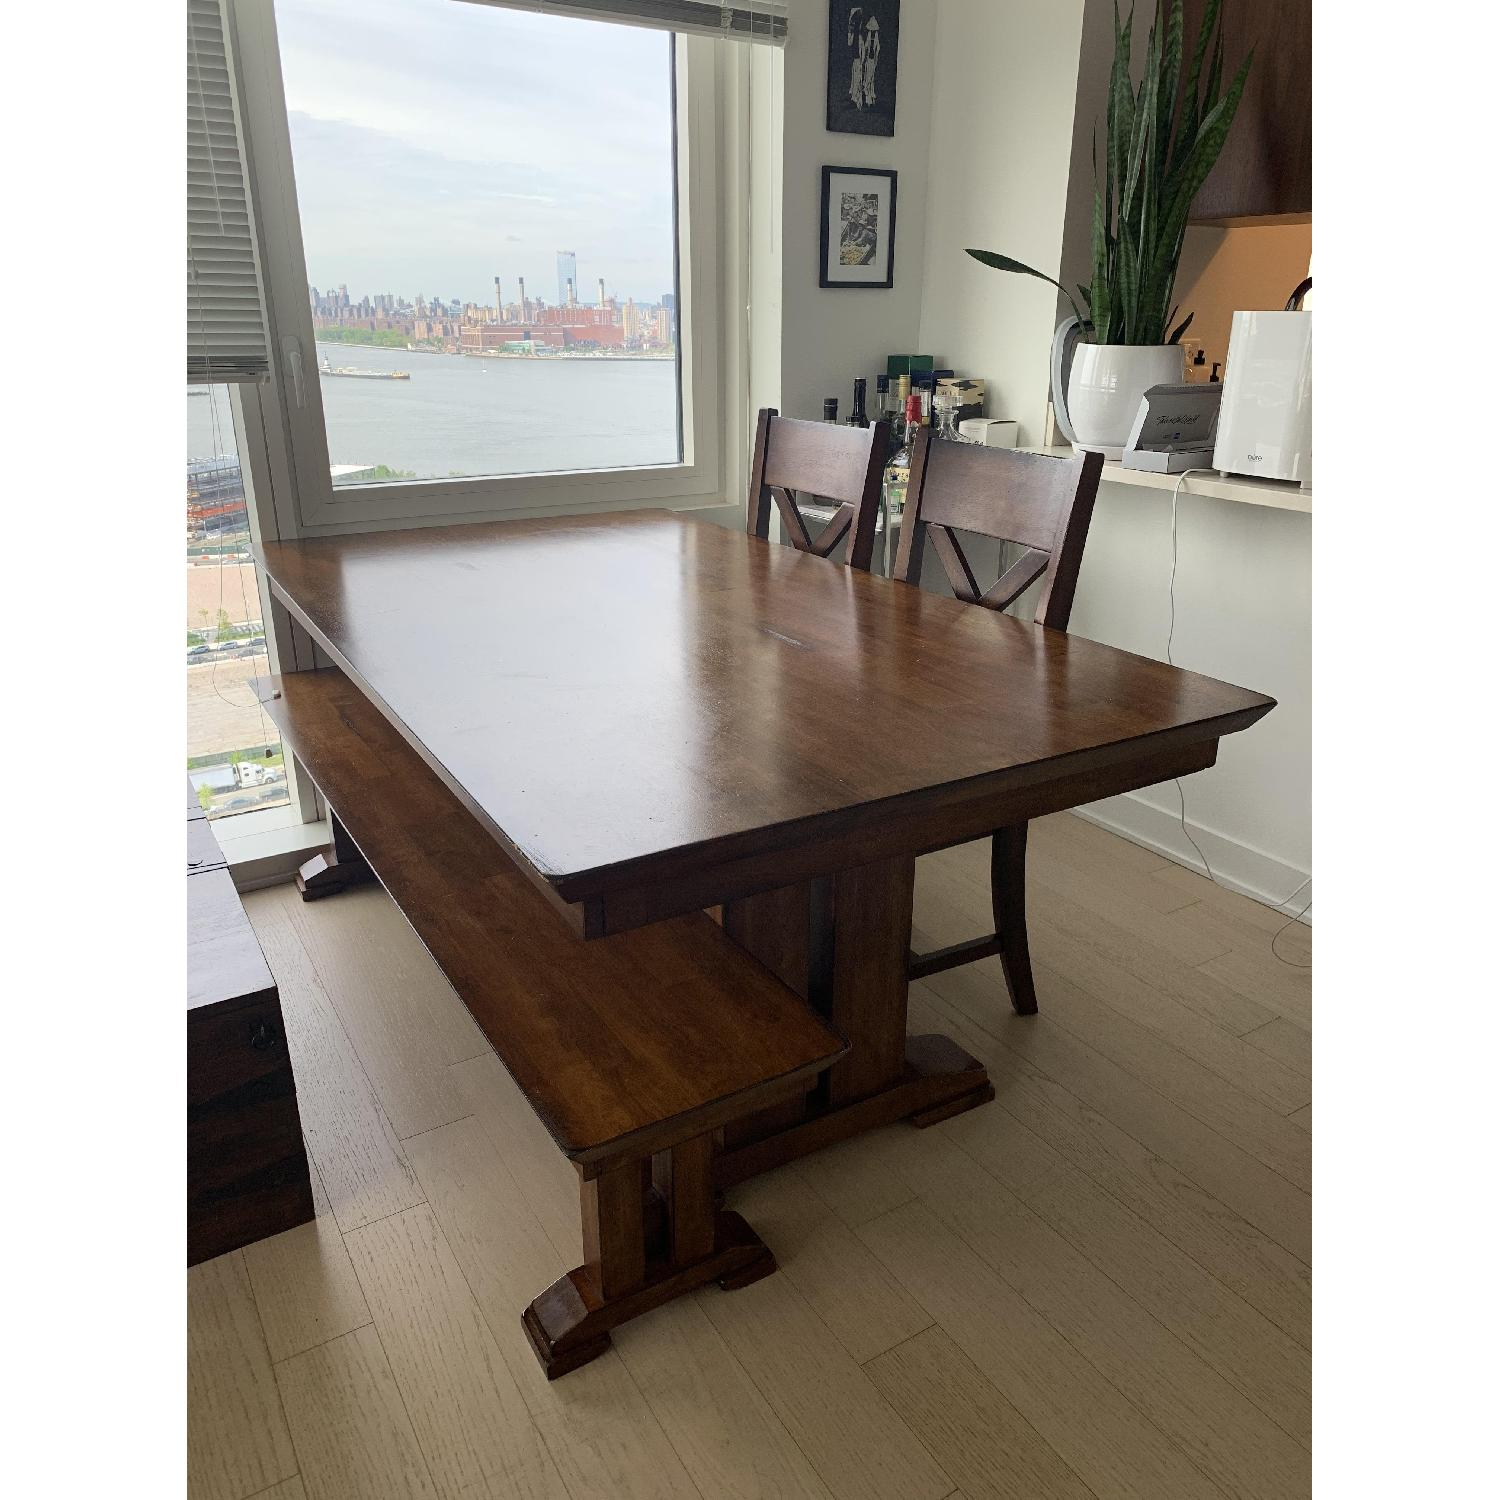 World Market Solid Wood Dining Table w/ 1 Bench + 2 Chairs - image-2